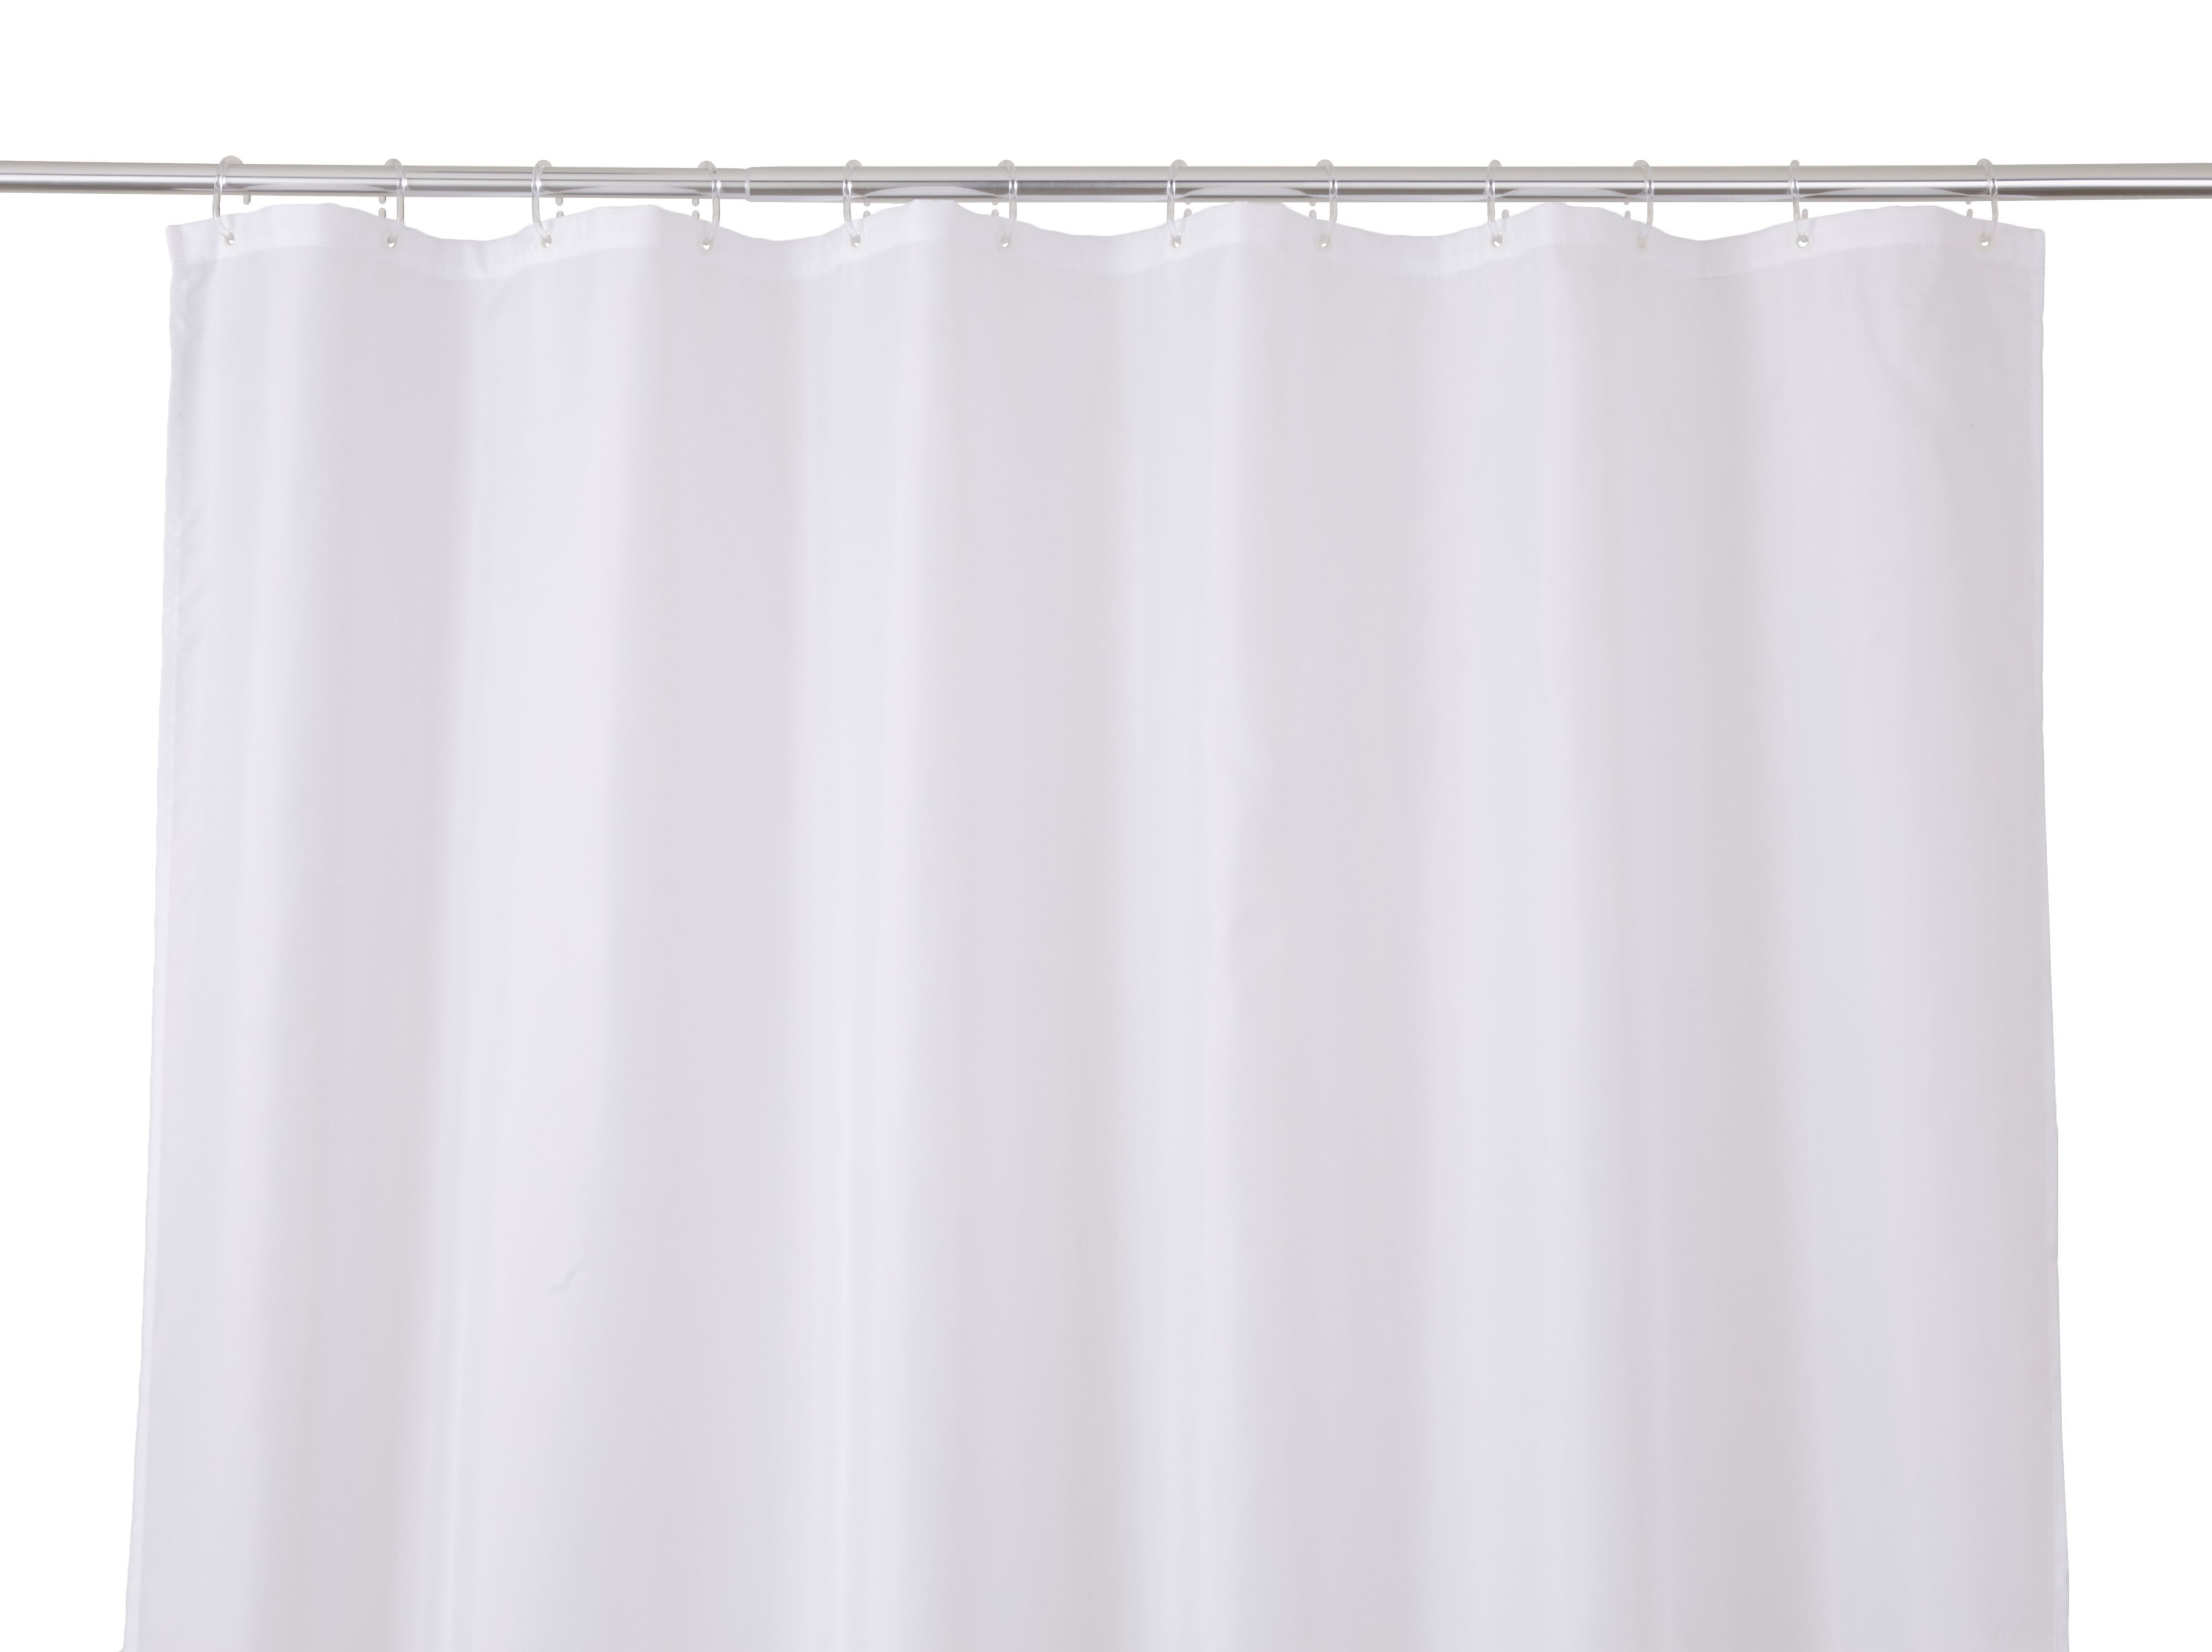 Cooke & Lewis Diani White Shower Curtain (l)1800 Mm